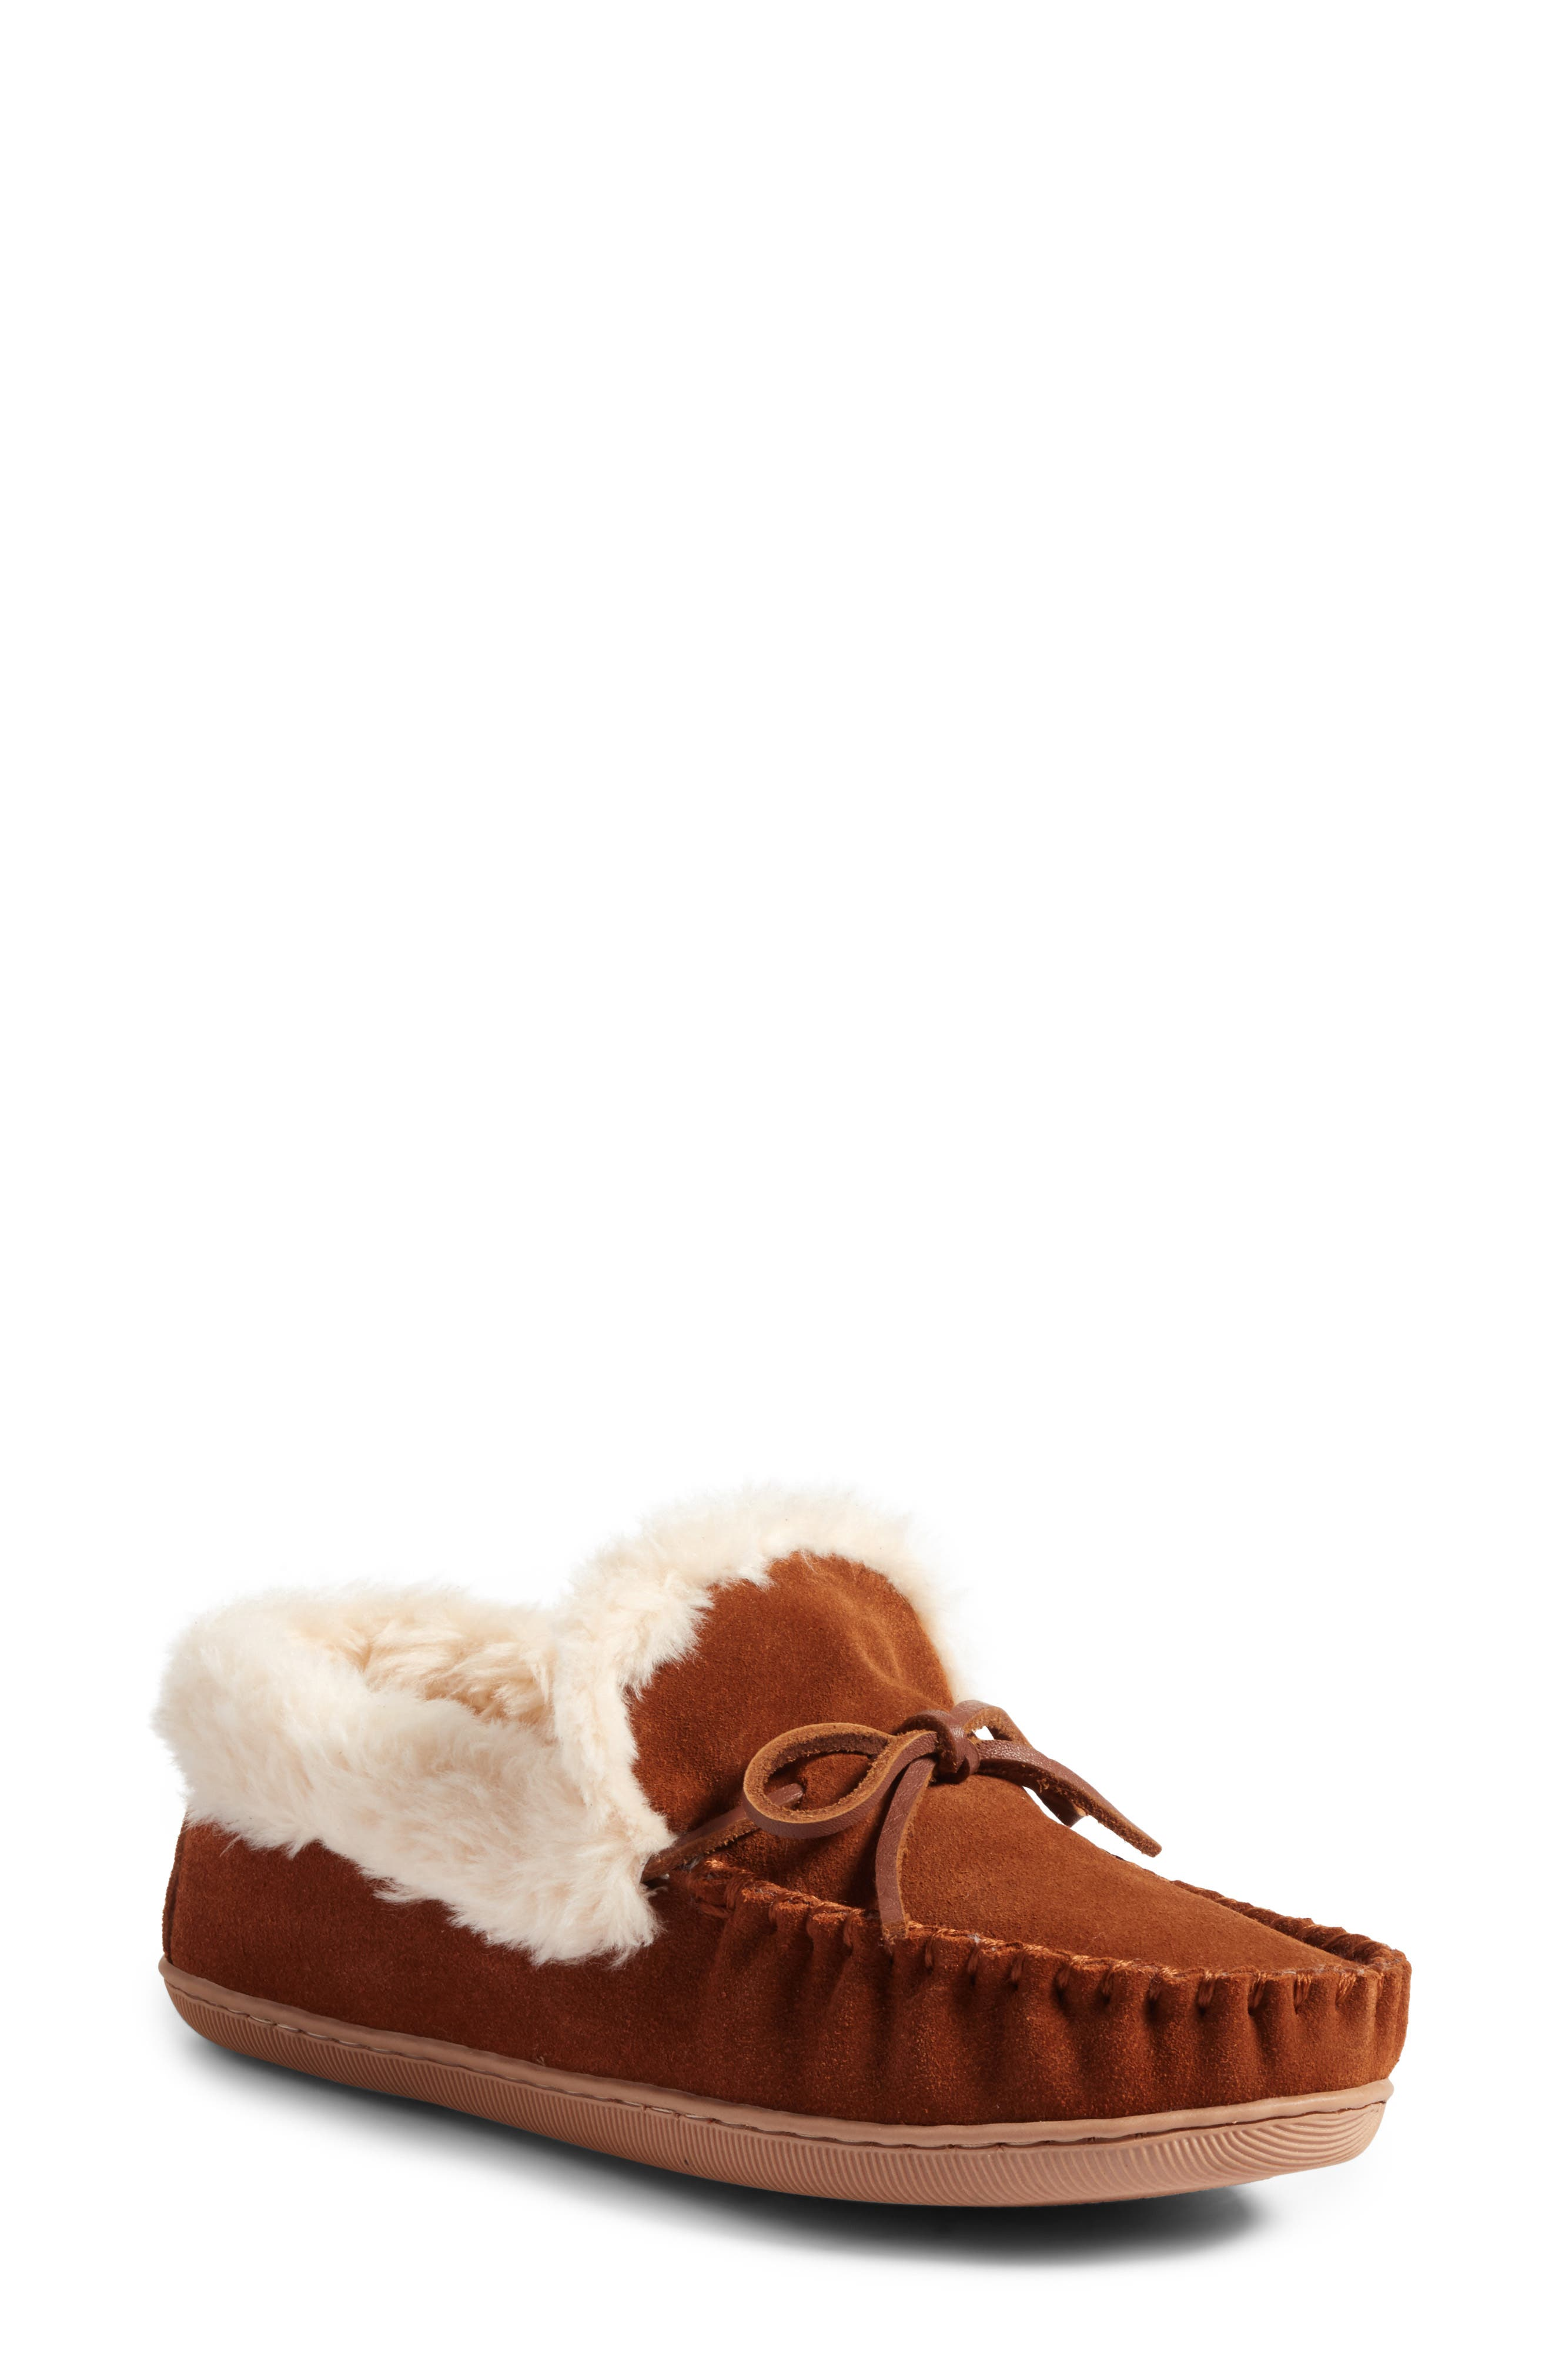 J.Crew Lodge Faux Shearling Moc Slipper,                             Main thumbnail 1, color,                             Dark Nutmeg Suede